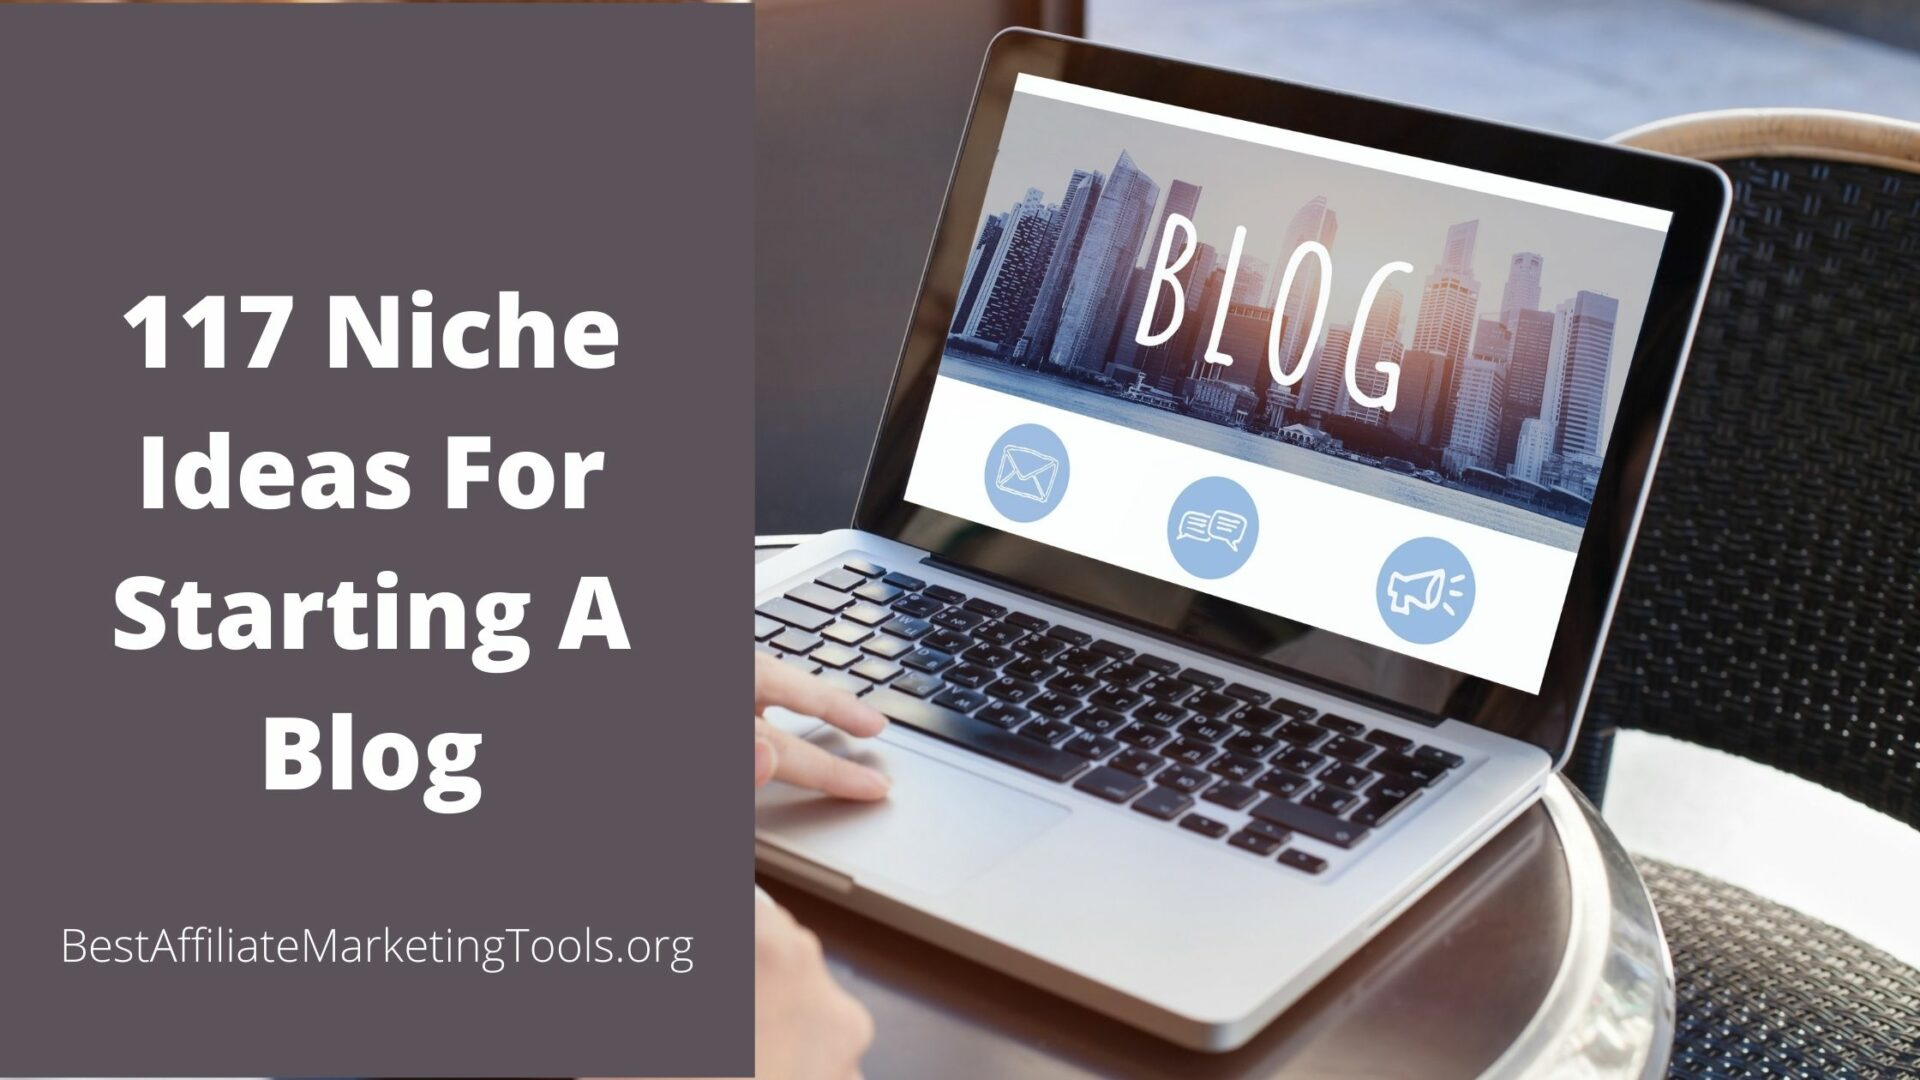 117 Niche Ideas For Starting A Blog